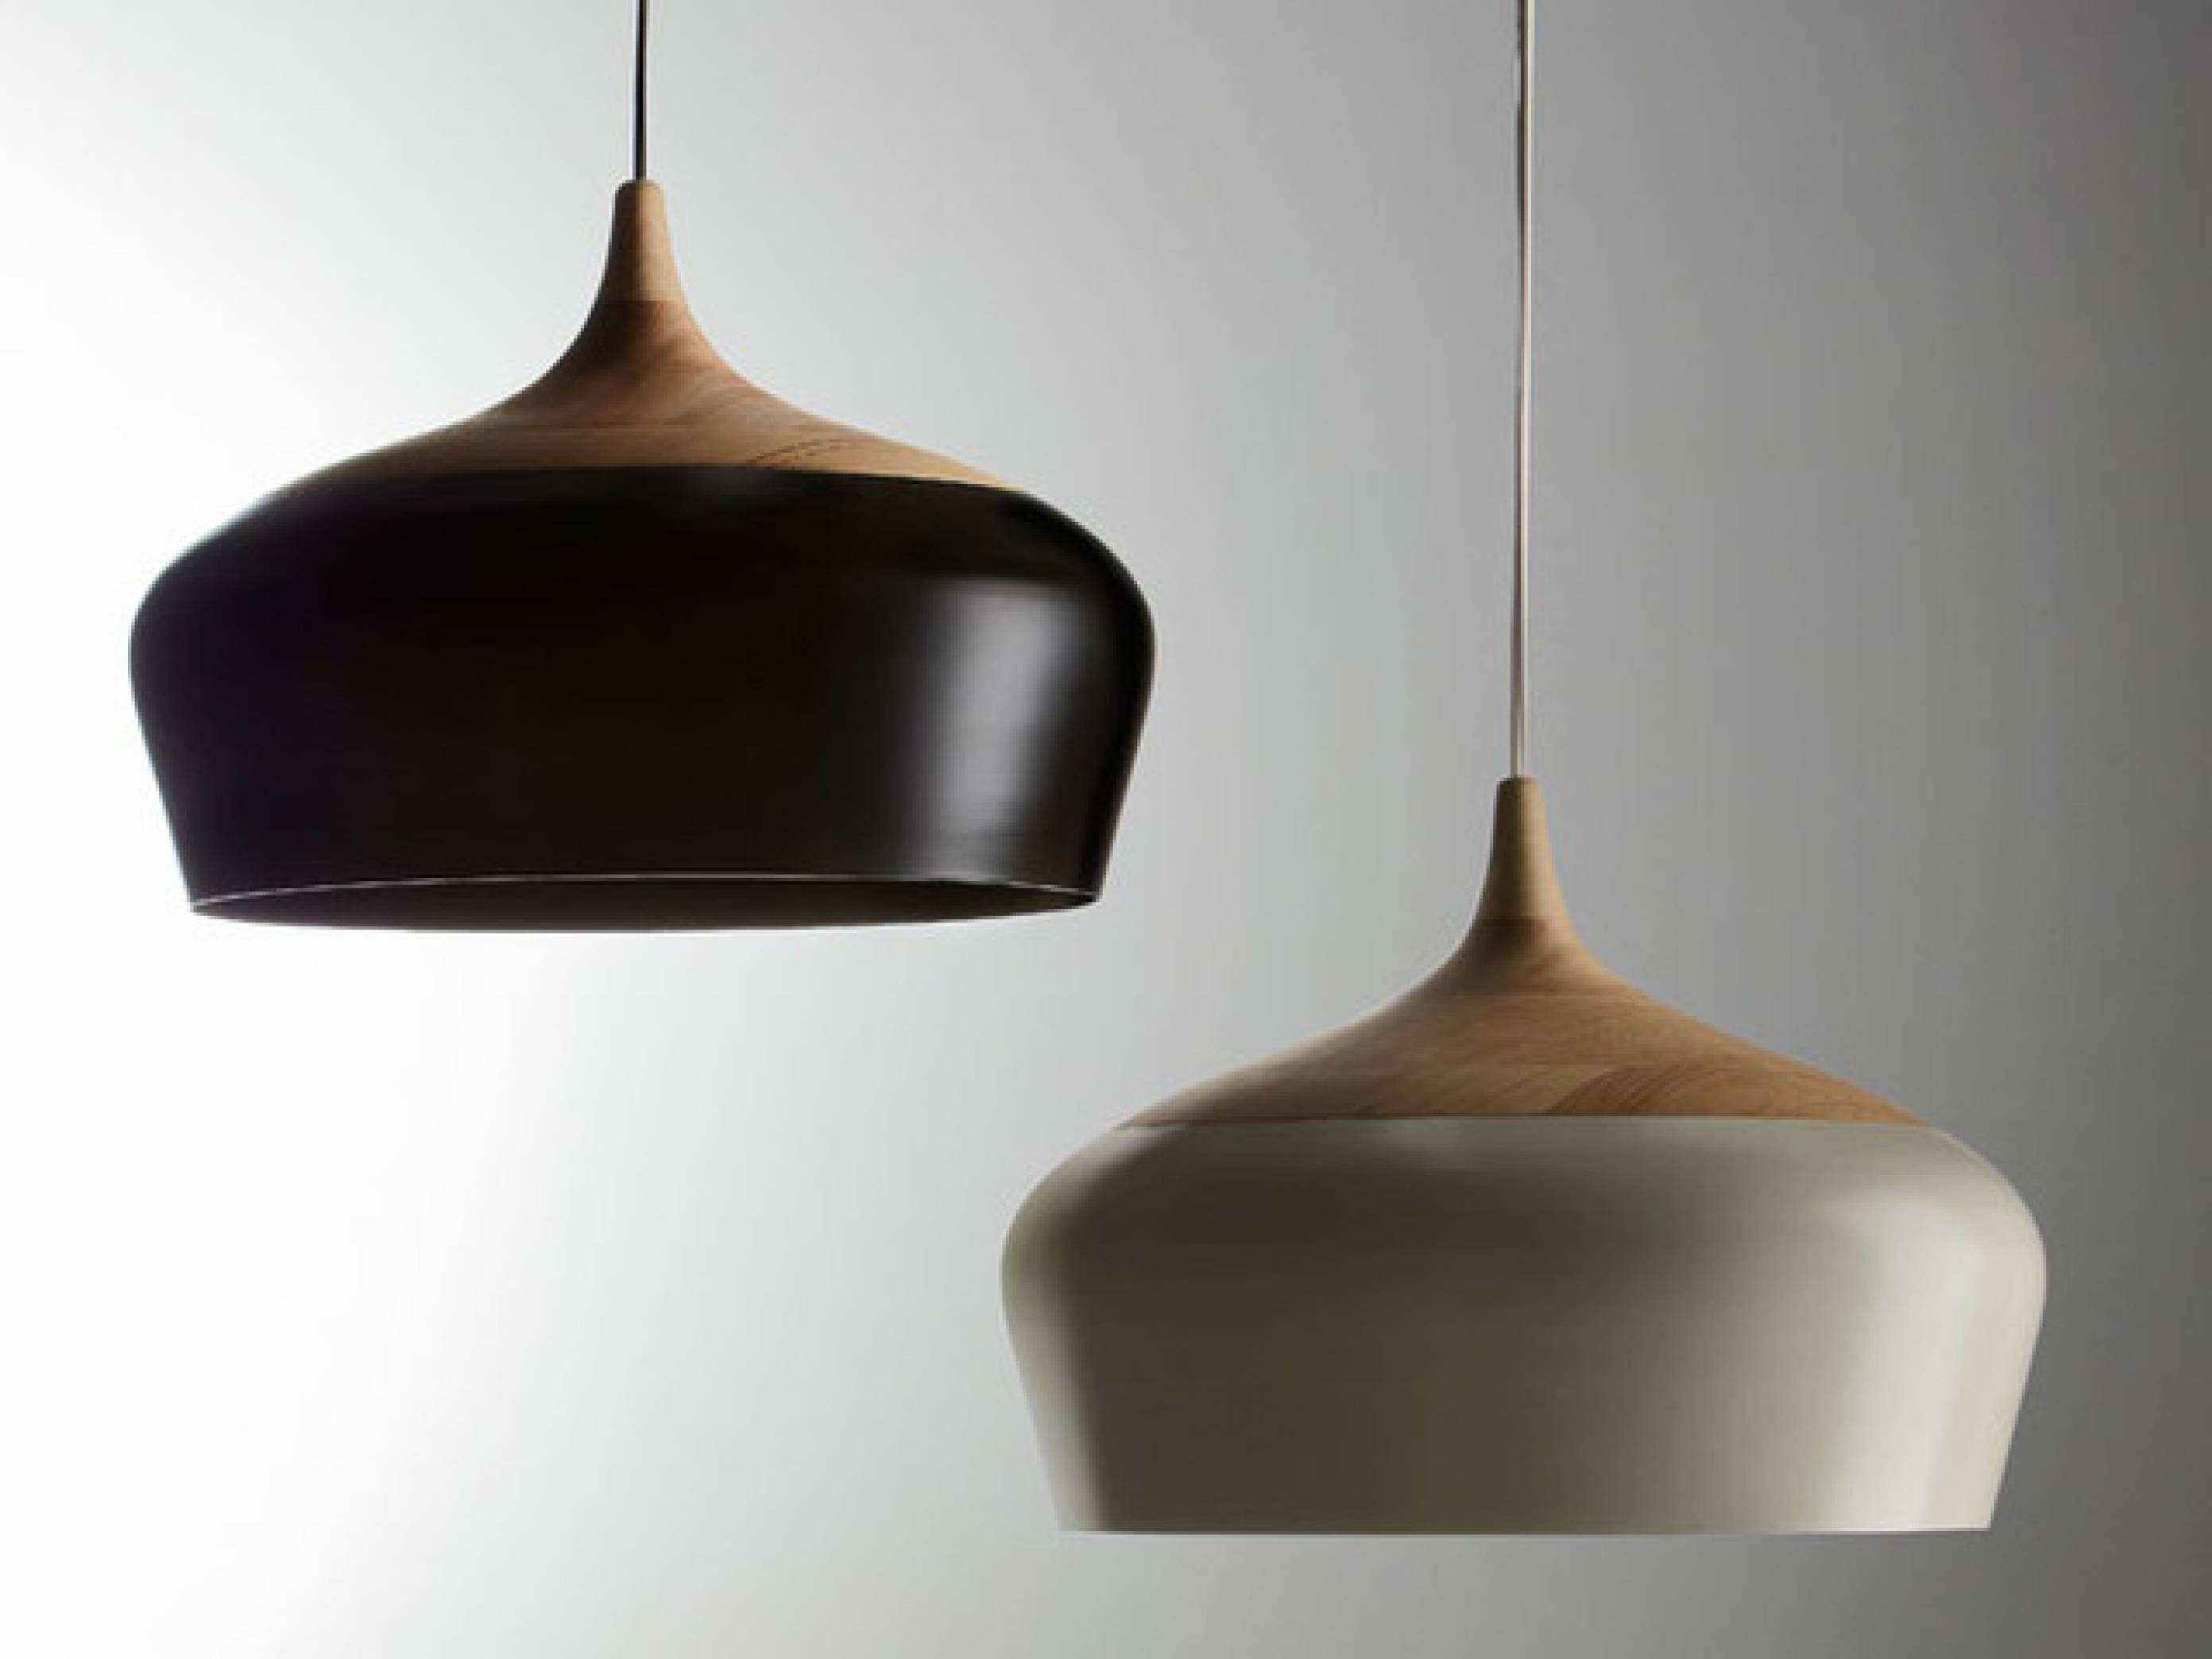 Lovable Cool Pendant Light Residence Decor Photos Wooden Pendant with Wooden Pendant Lights Melbourne (Image 13 of 15)